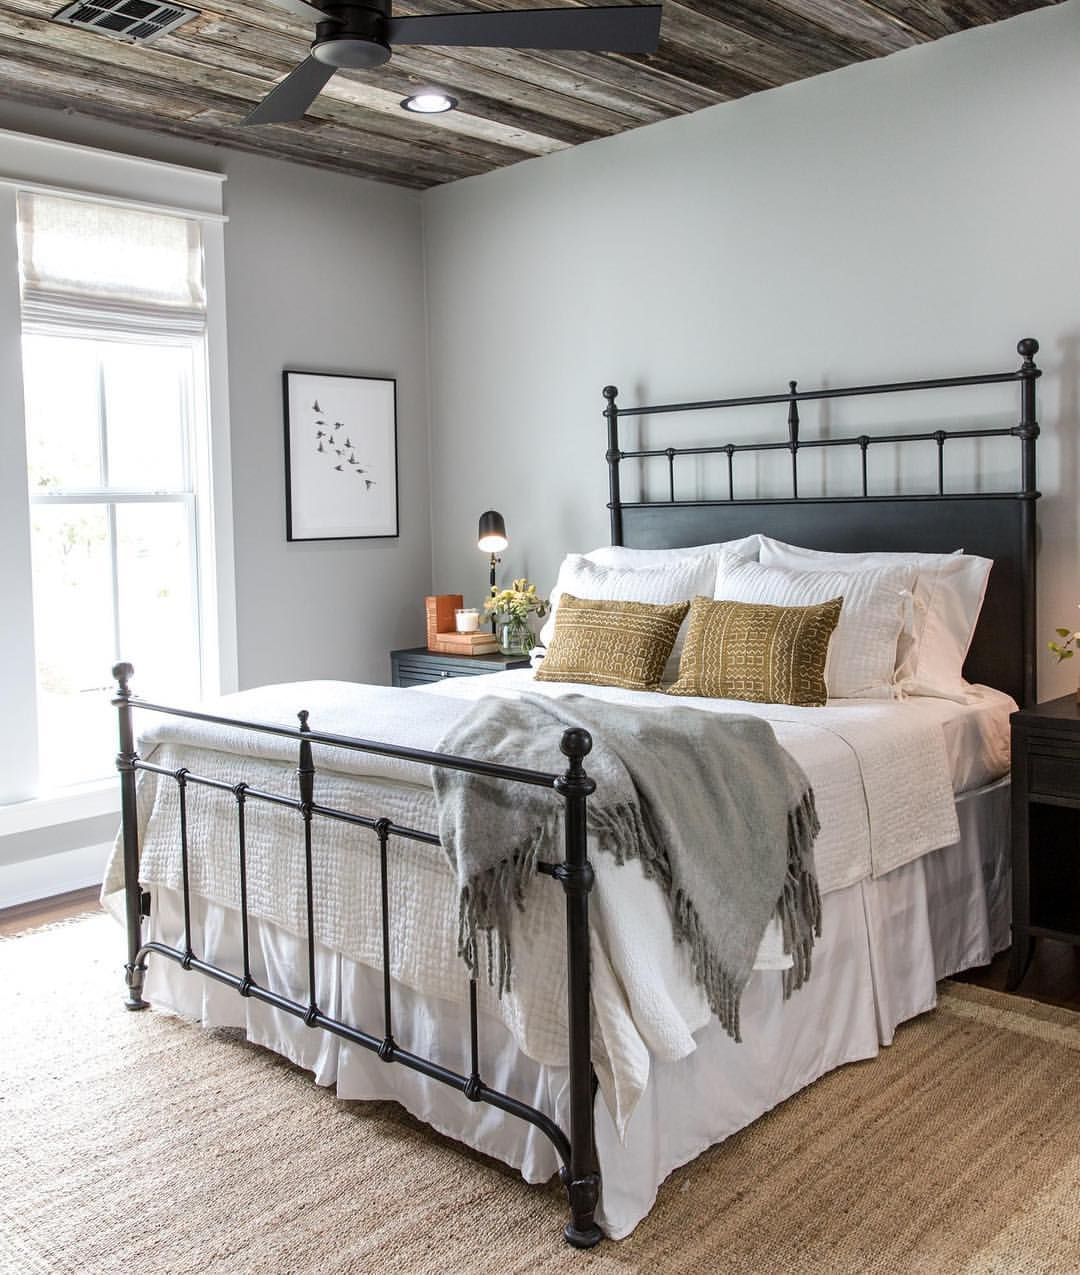 Pin on home bedrooms - Magnolia bedding joanna gaines ...